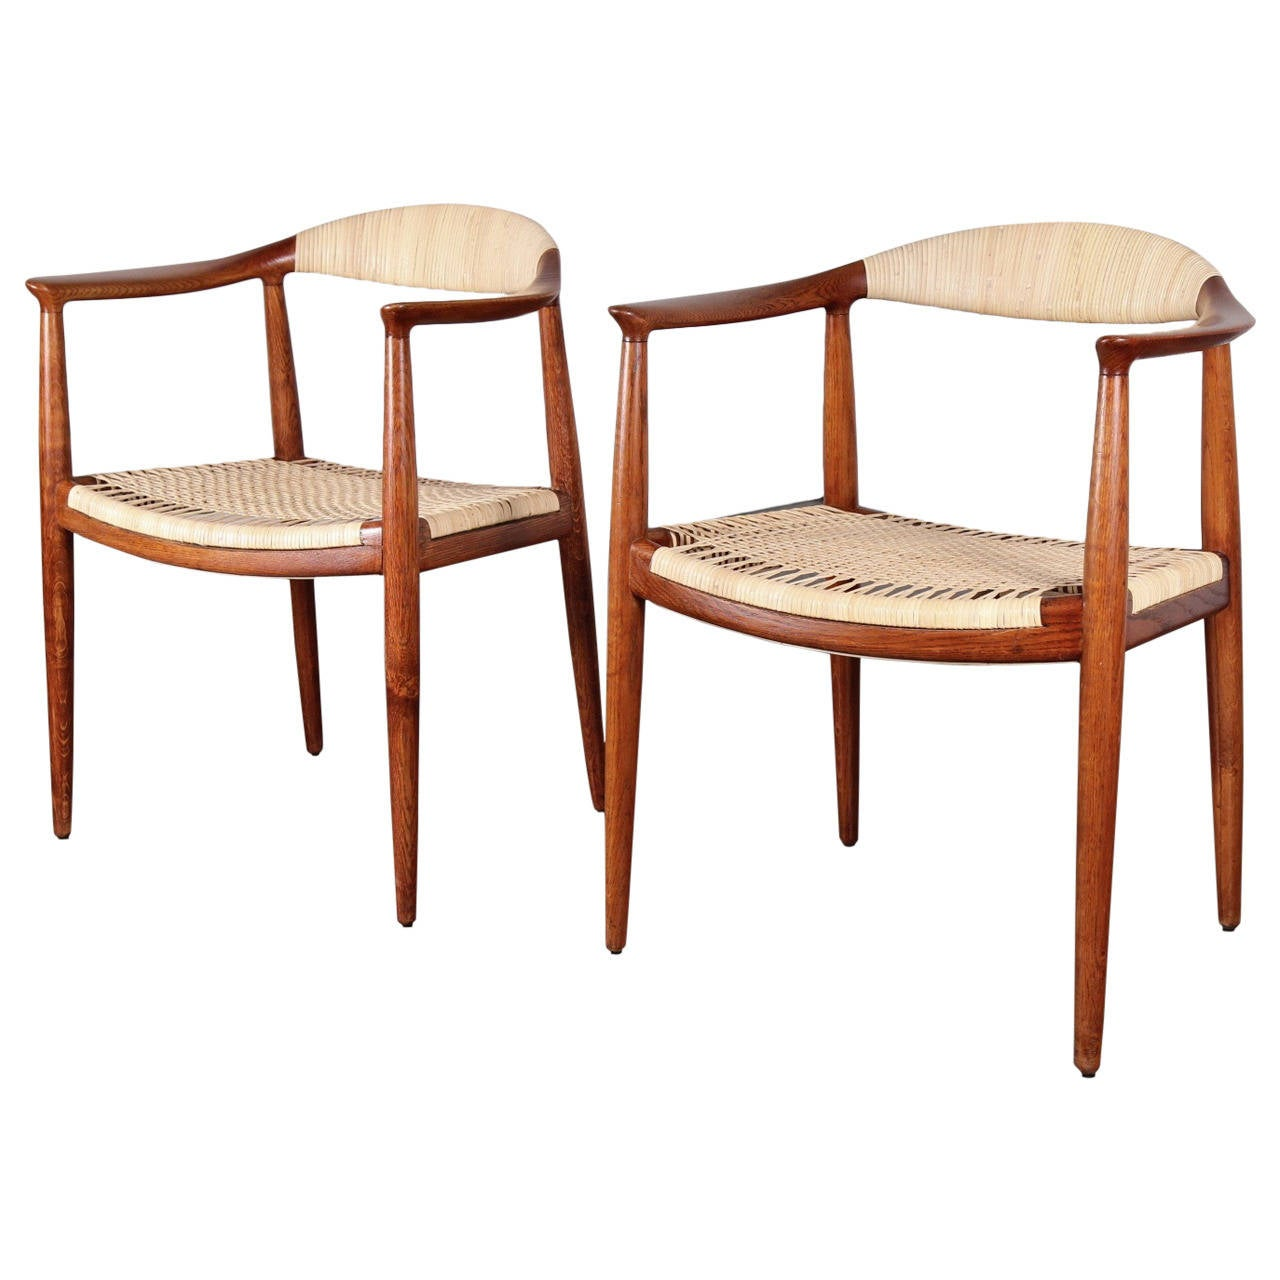 Round Chairs For Sale: Cane Round Chairs By Hans Wegner At 1stdibs